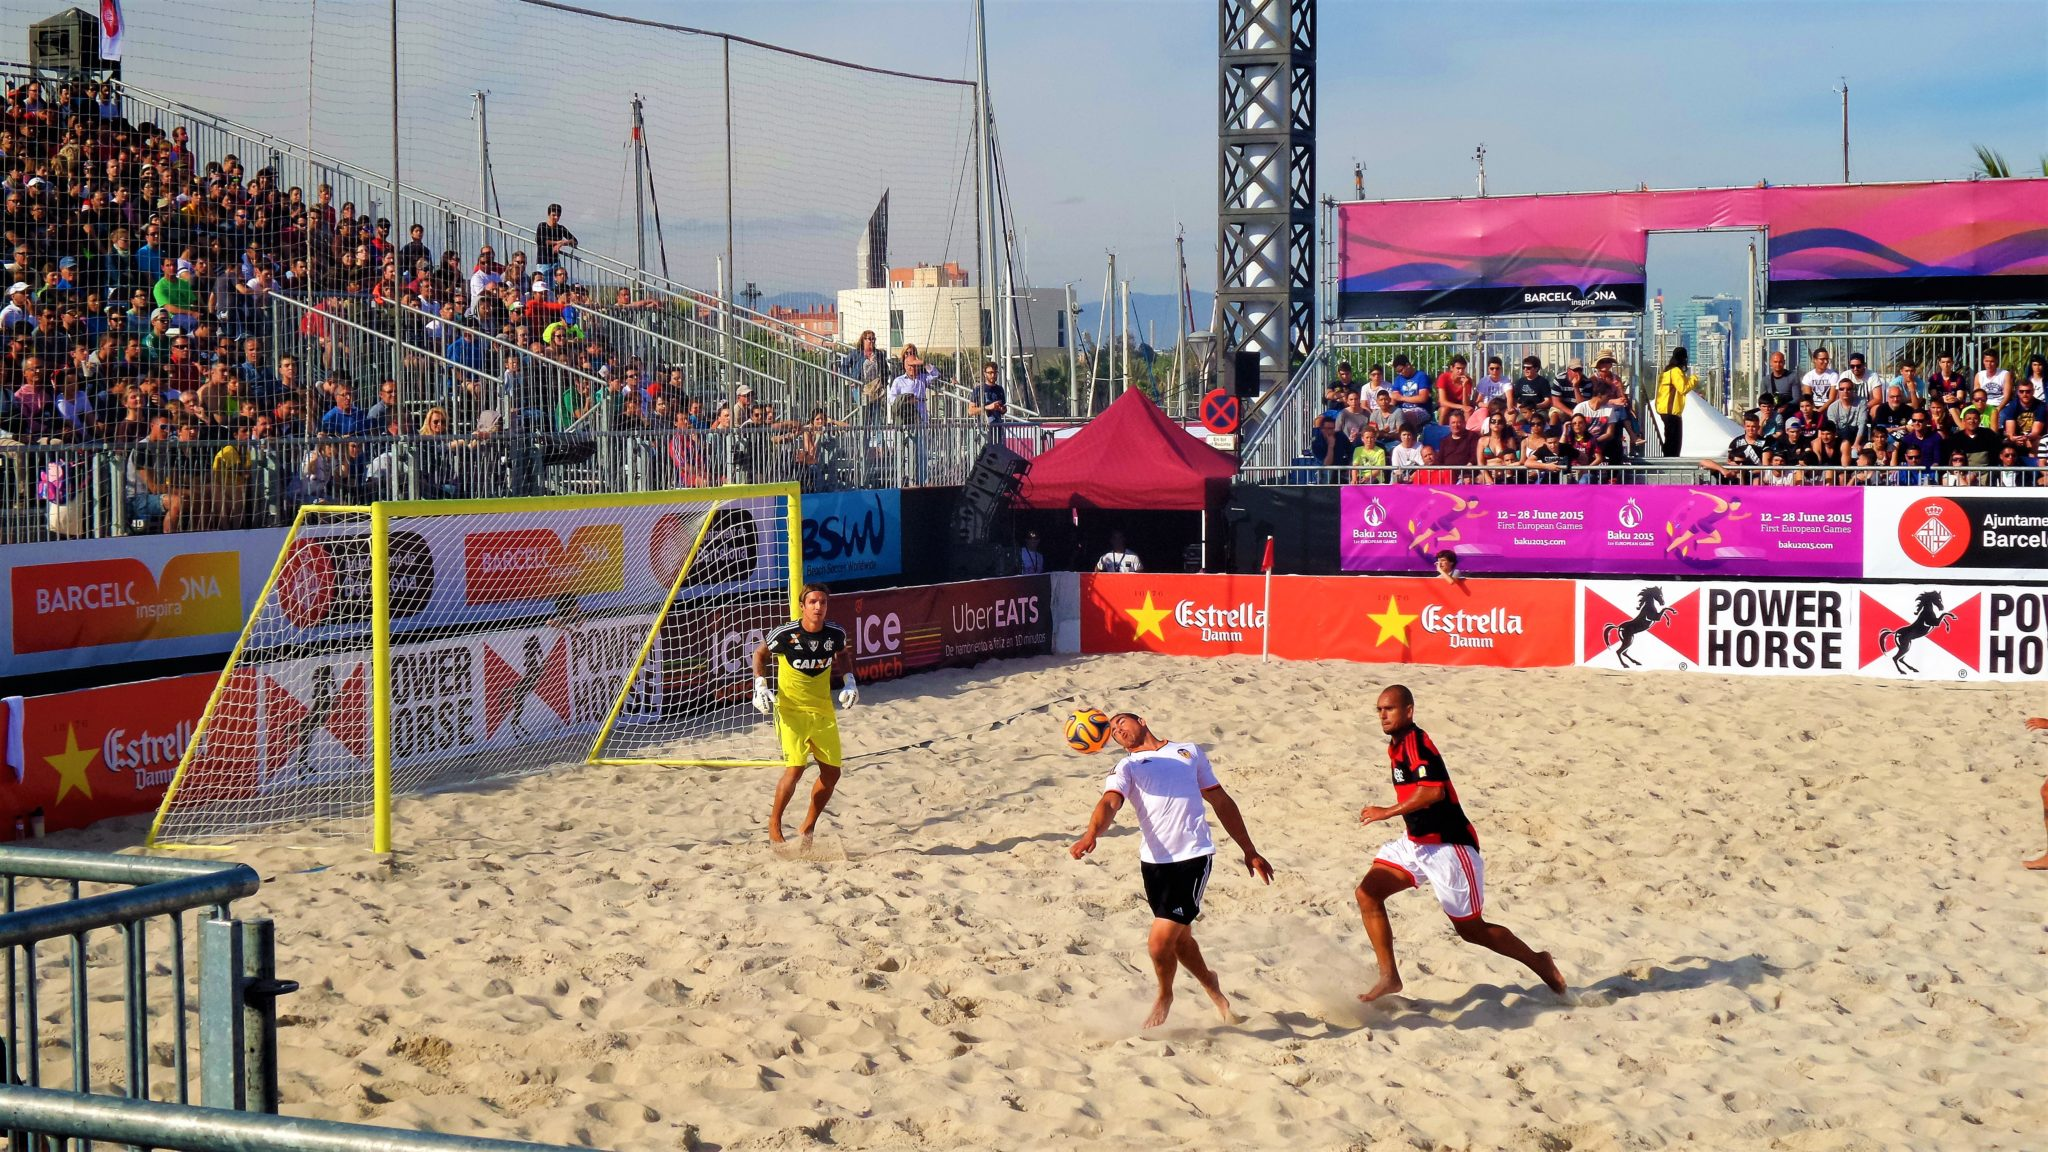 Game at Beach soccer, Barcelona, Spain